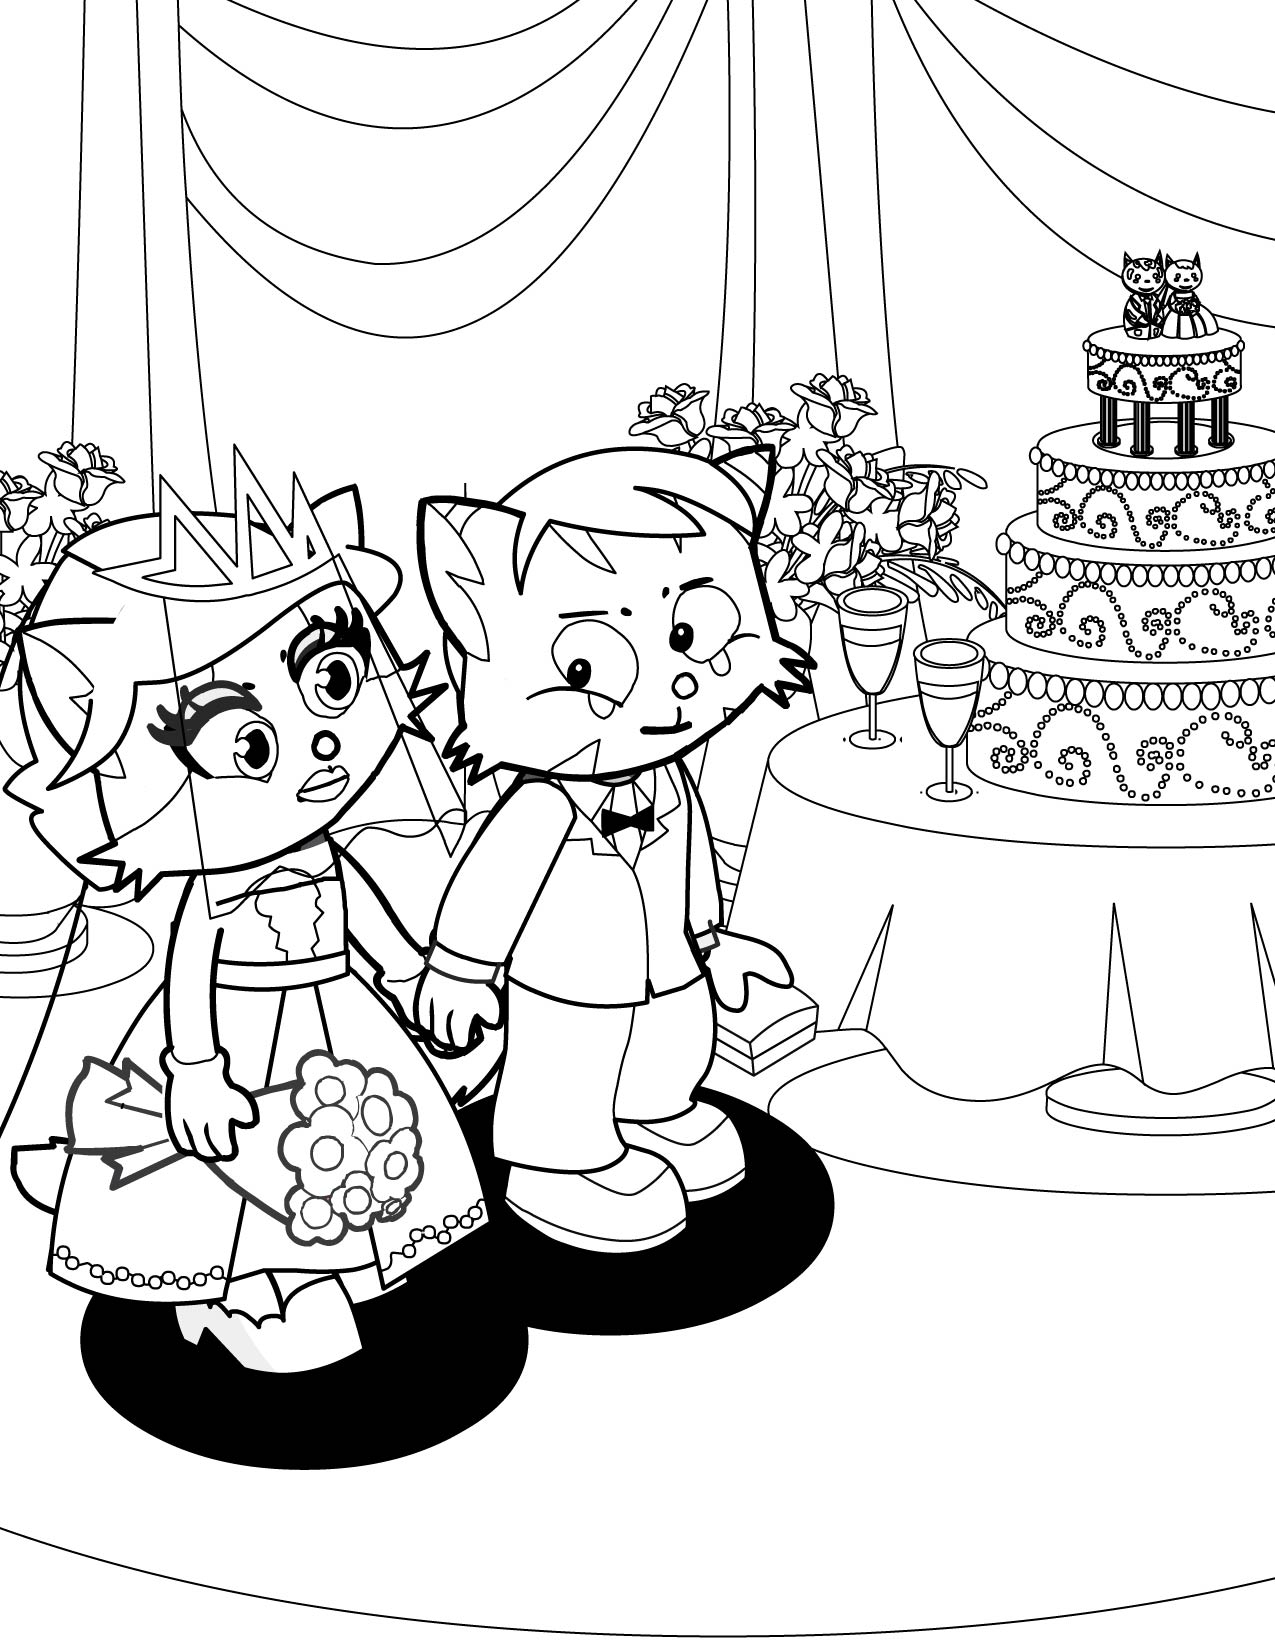 bride and groom coloring pages beccy39s place bride and groom and groom coloring bride pages